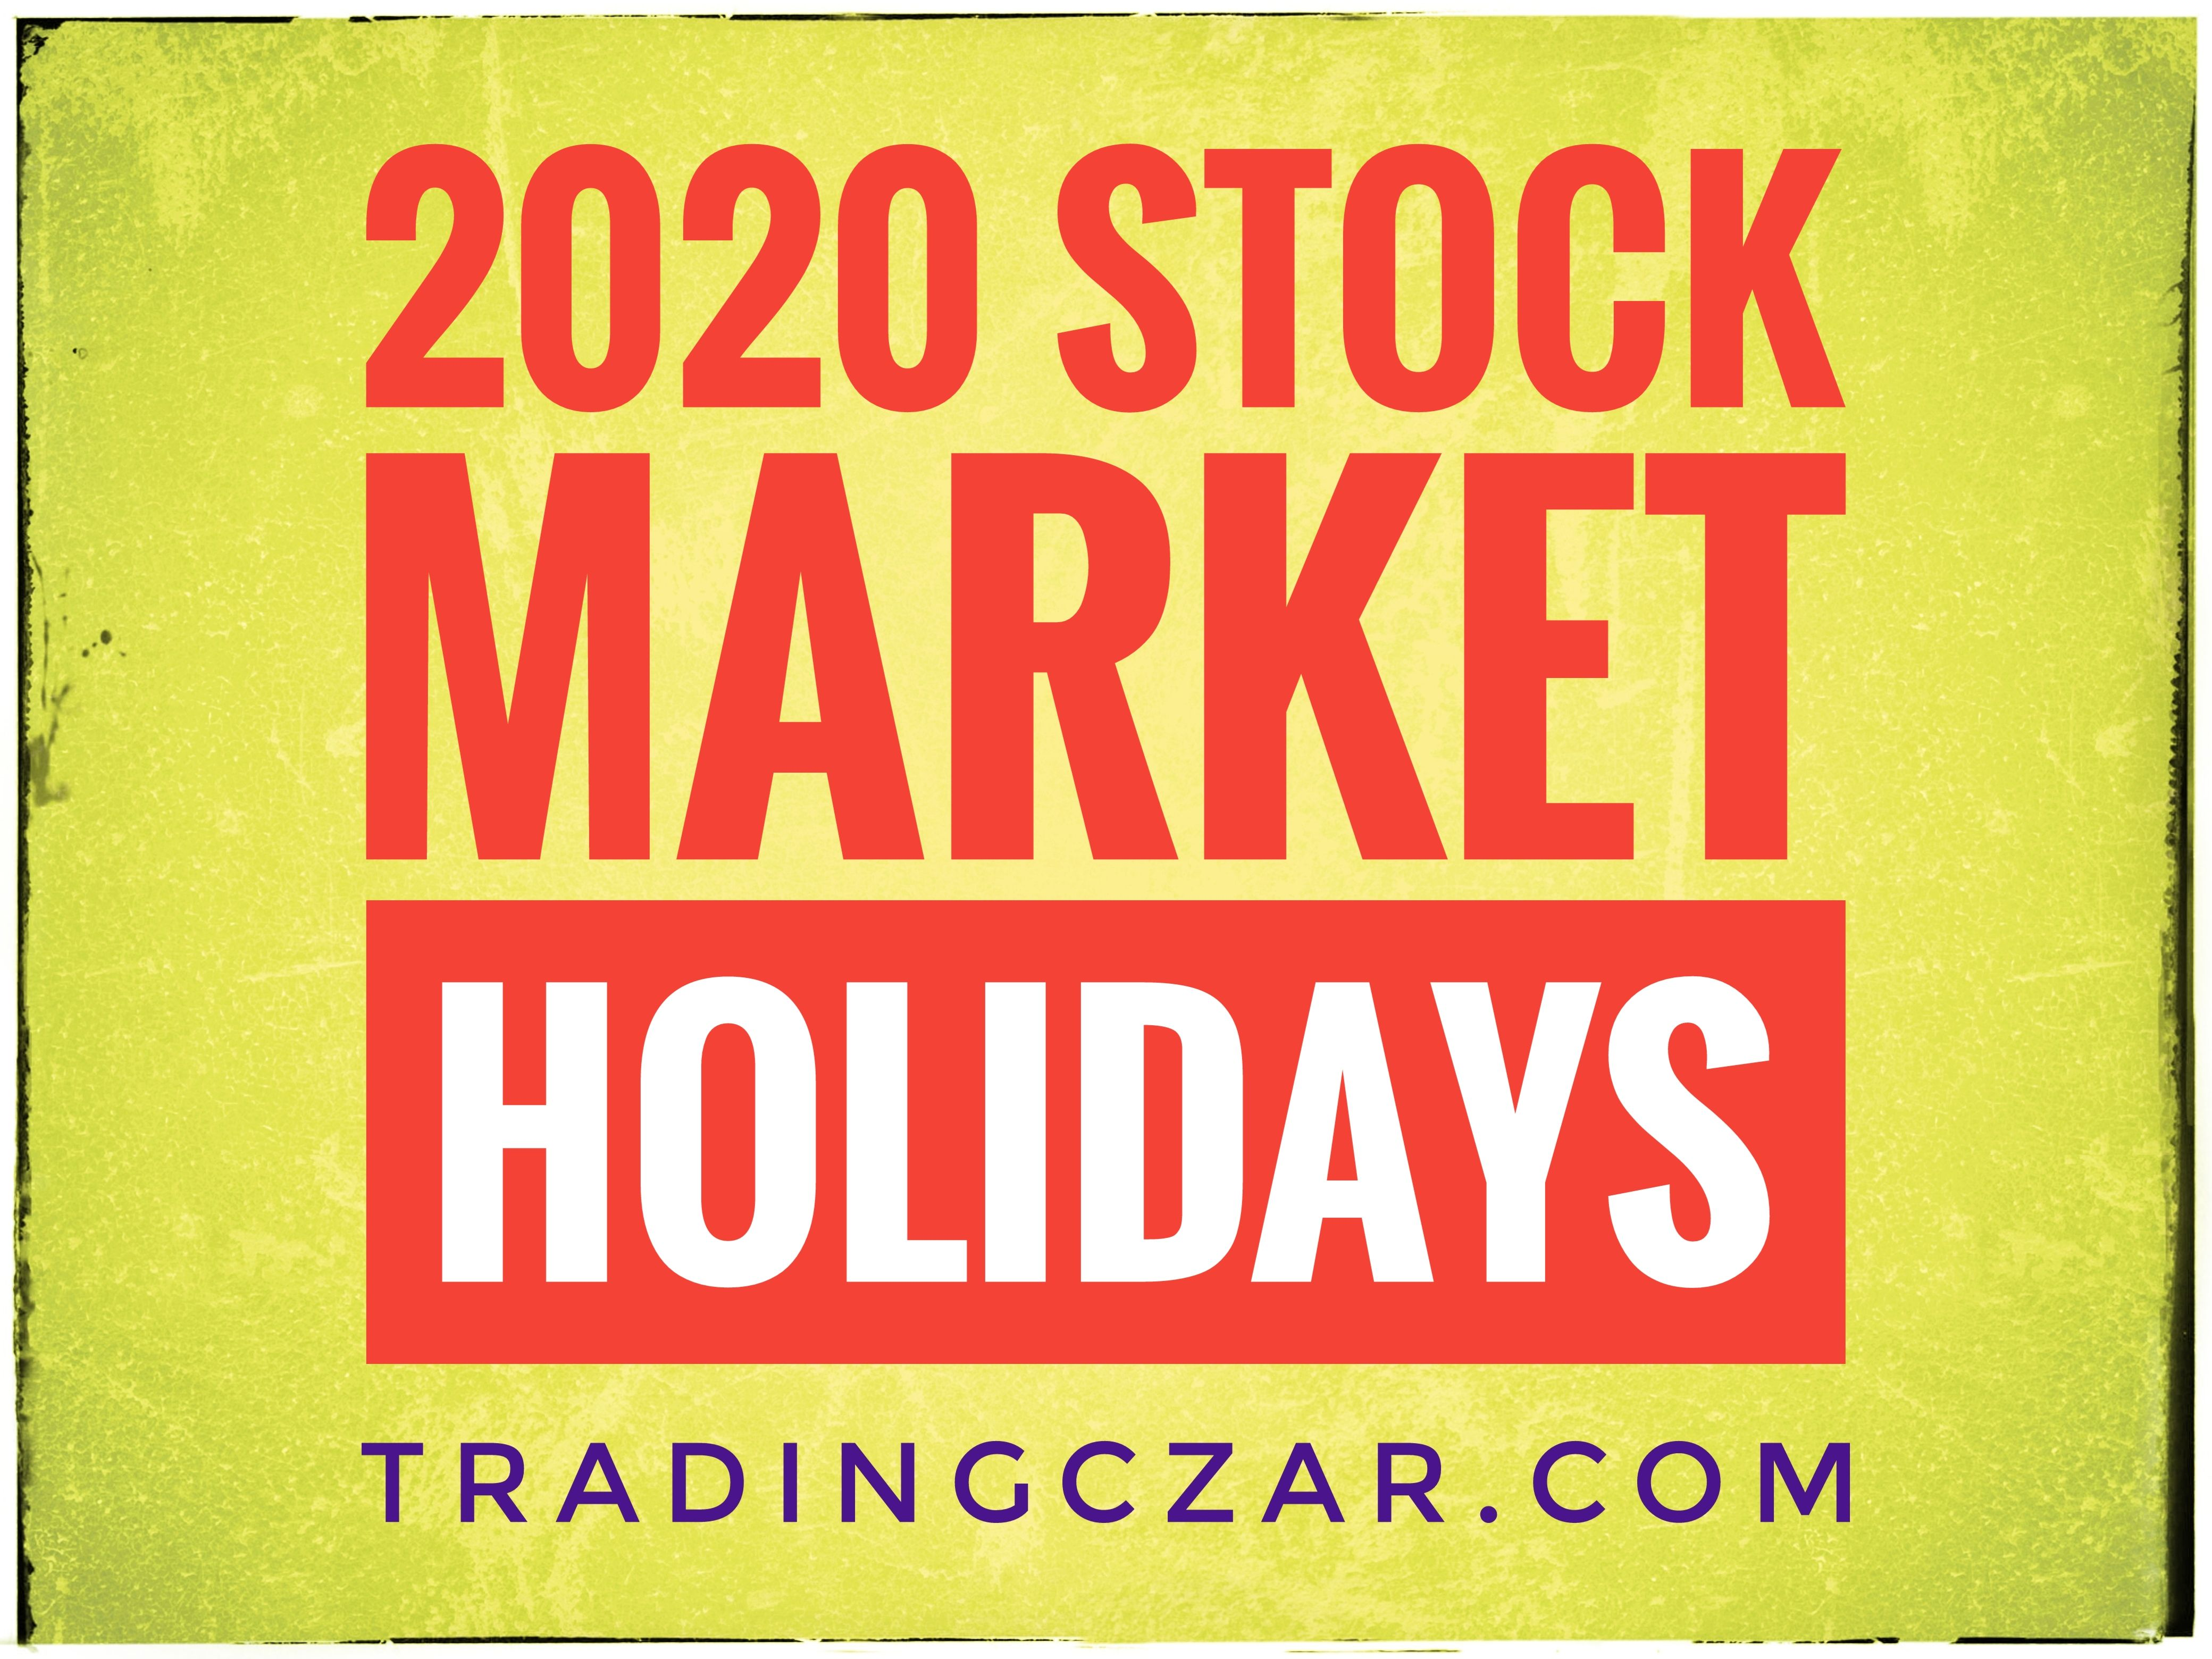 2020 Stock Market Holidays 2020 New York Stock Exchange Holidays